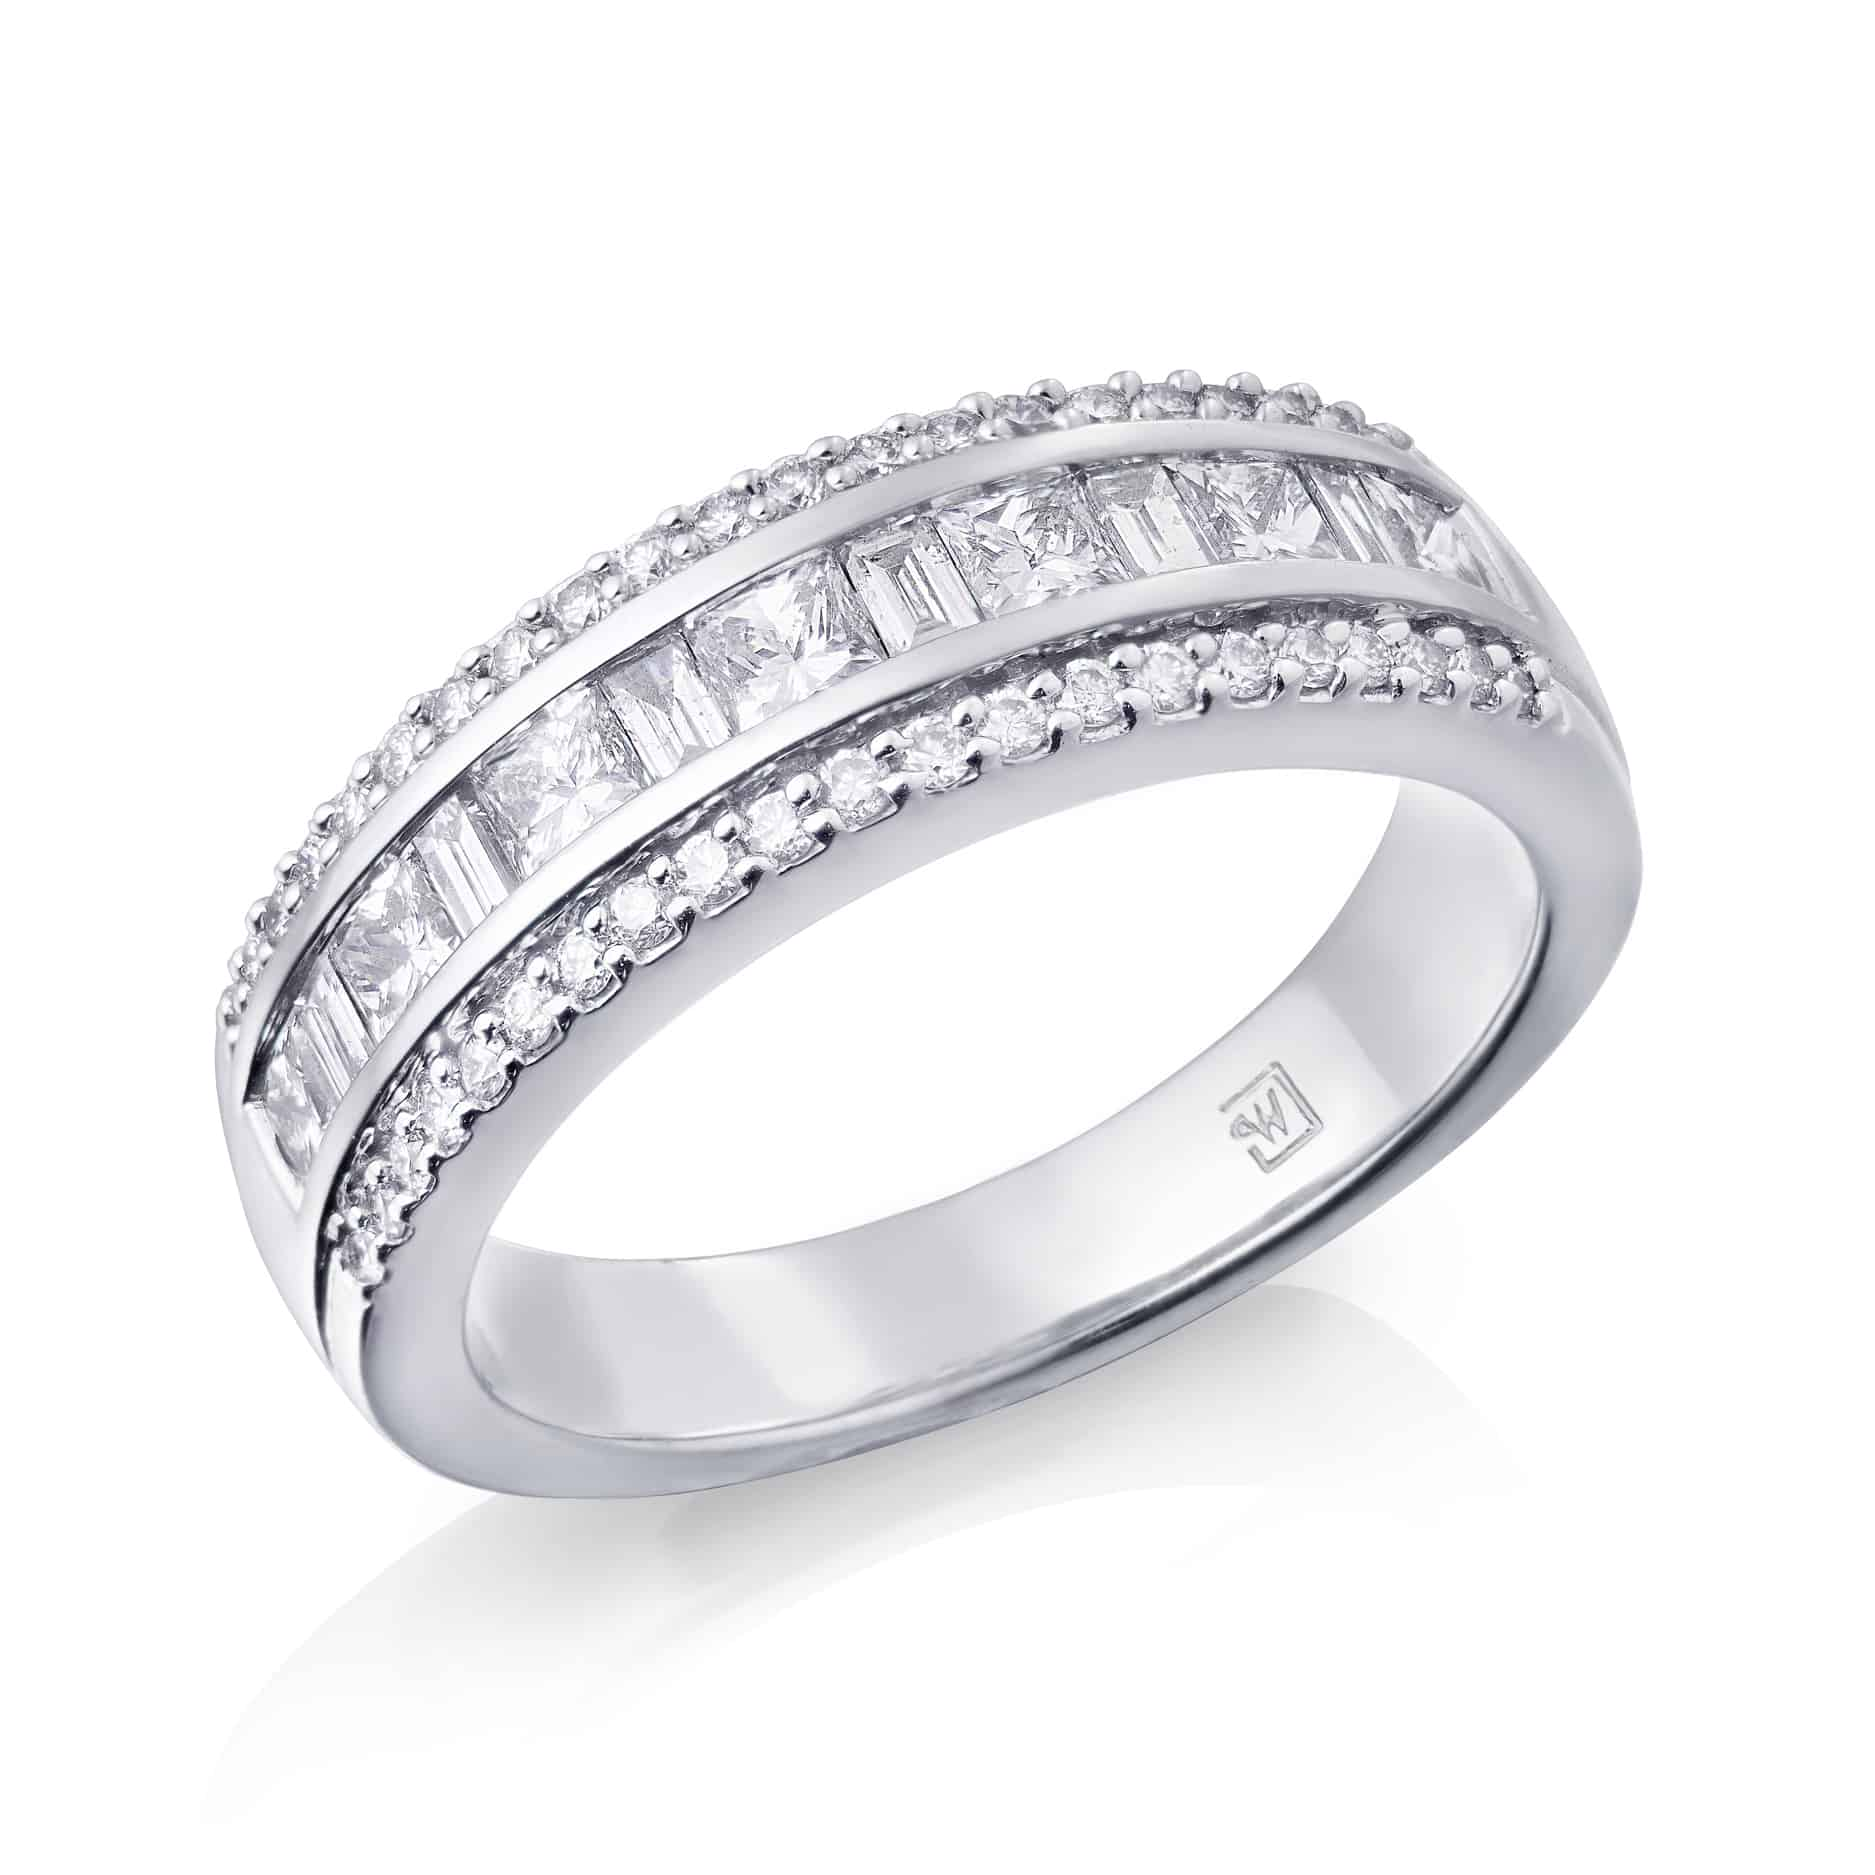 Princess, Baguette and Round Diamond Channel Ring